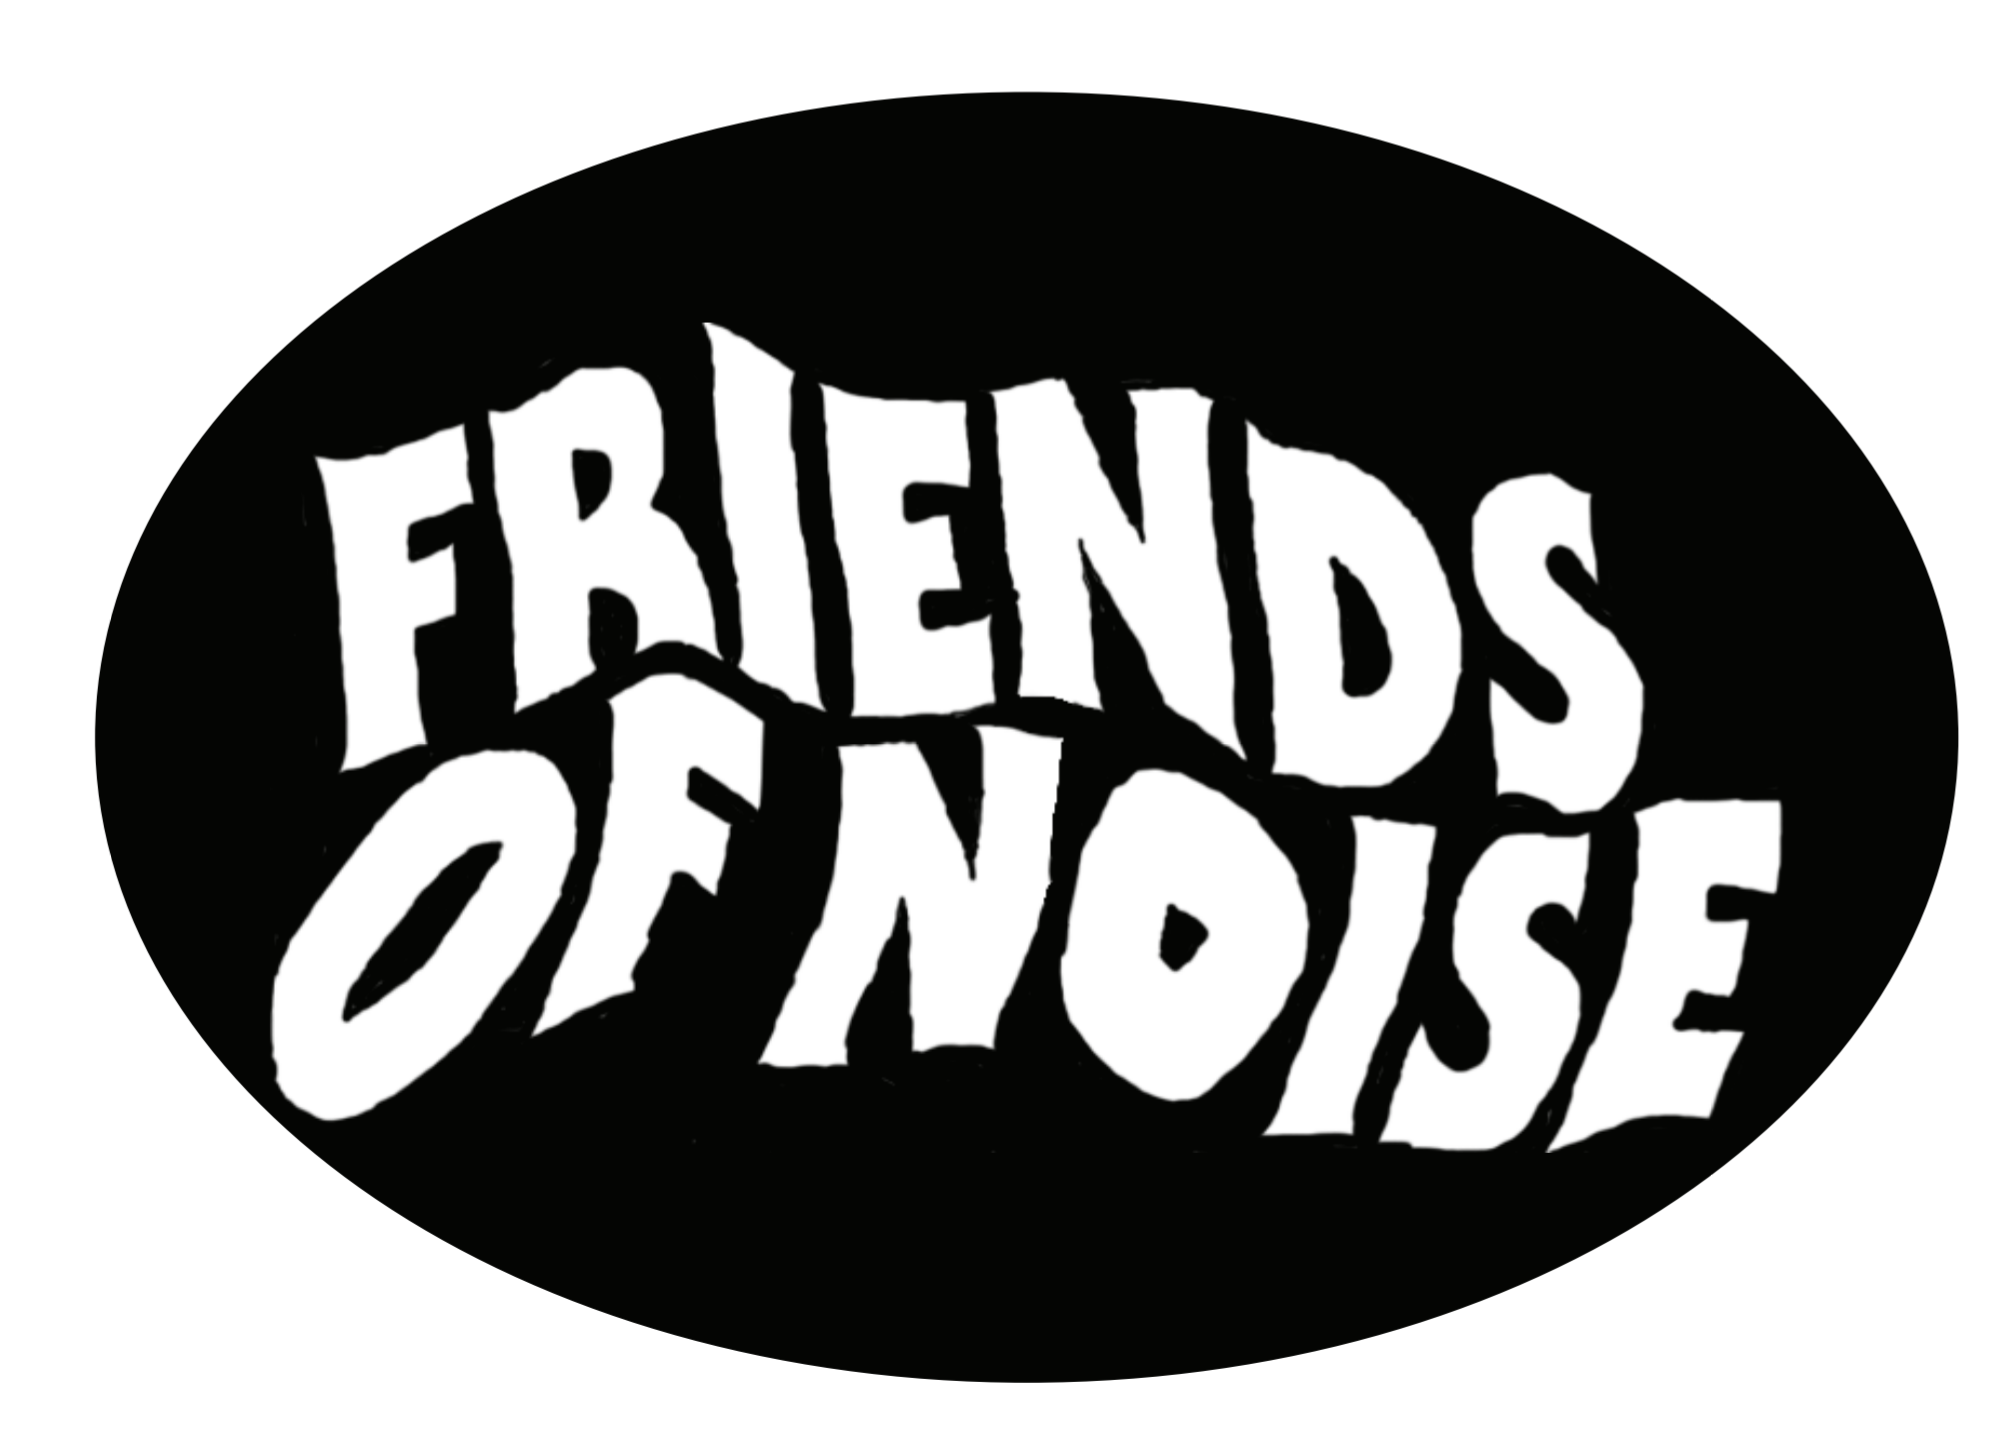 Friends of Noise - Friends of Noise seeks to foster healing and growth for the creative youth in our community via the arts. We host all age concerts that showcase youth first and adult artist second. We teach music production workshops so that young people can host and produce concerts themselves. We teach Music Biz professional development workshops so that young people can have a baseline skill set to navigate the music scene.